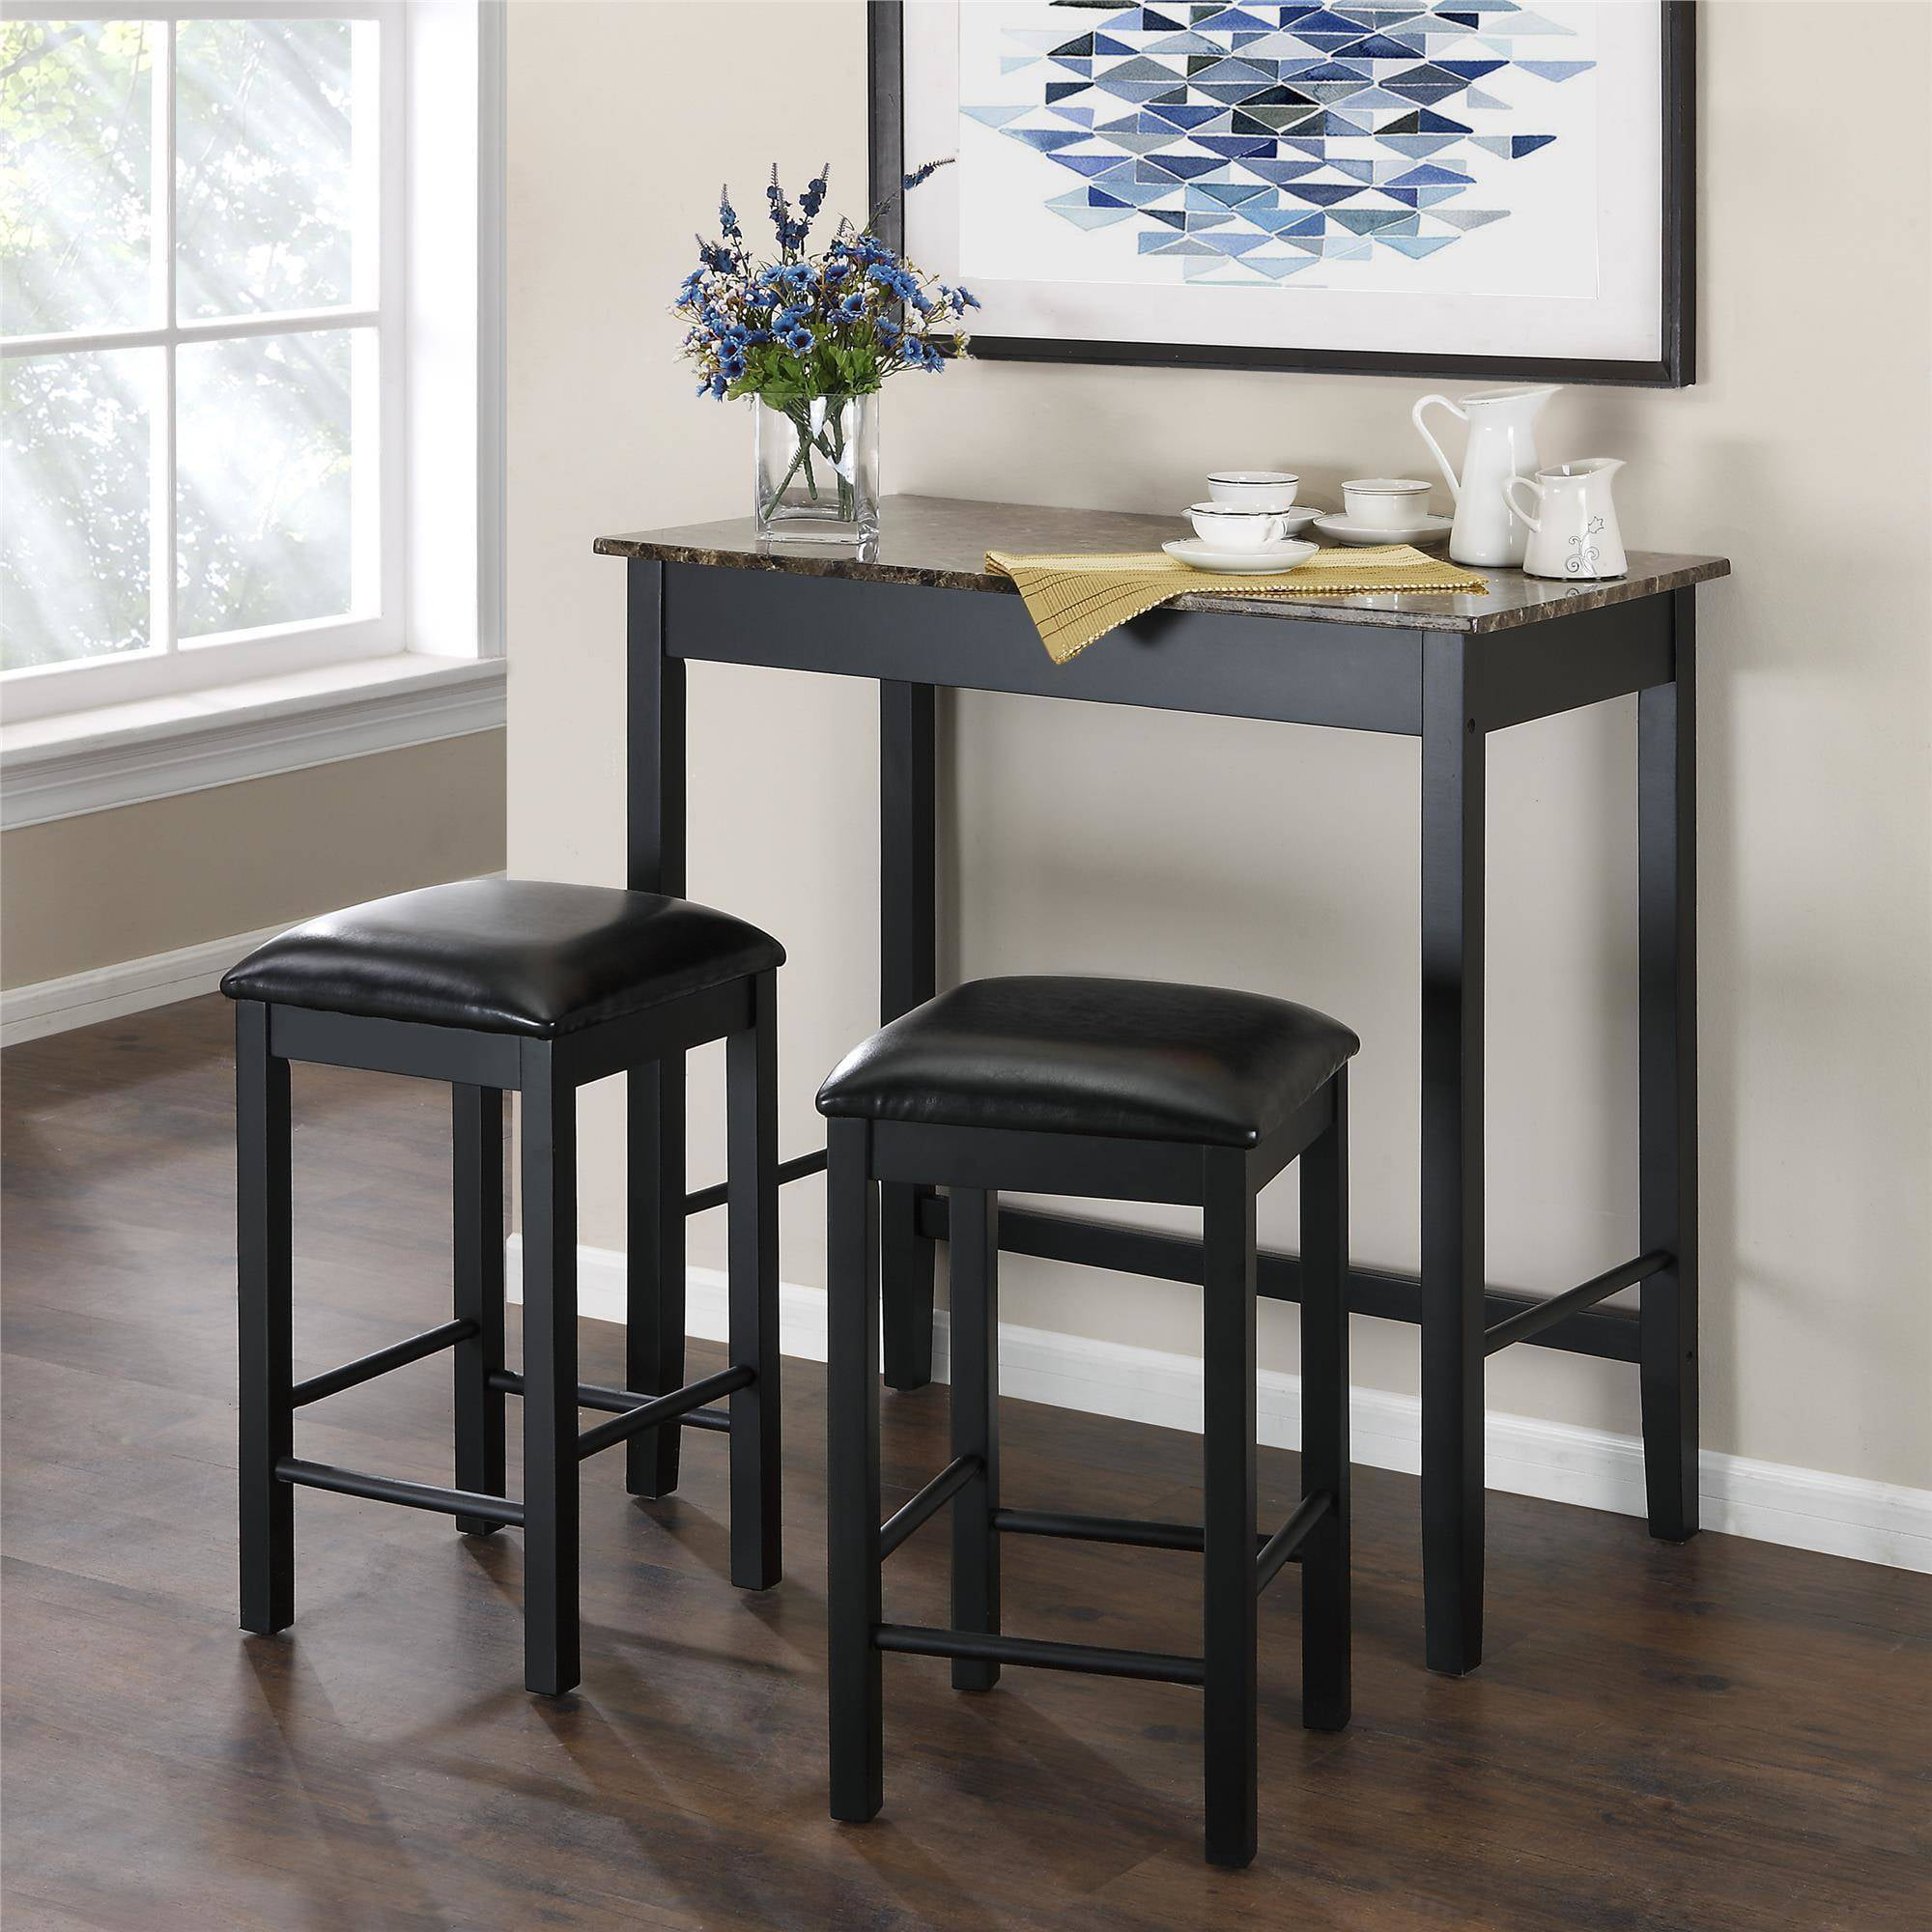 dorel living devyn 3 piece faux marble pub dining set black walmartcom - Kitchen Table With Bar Stools